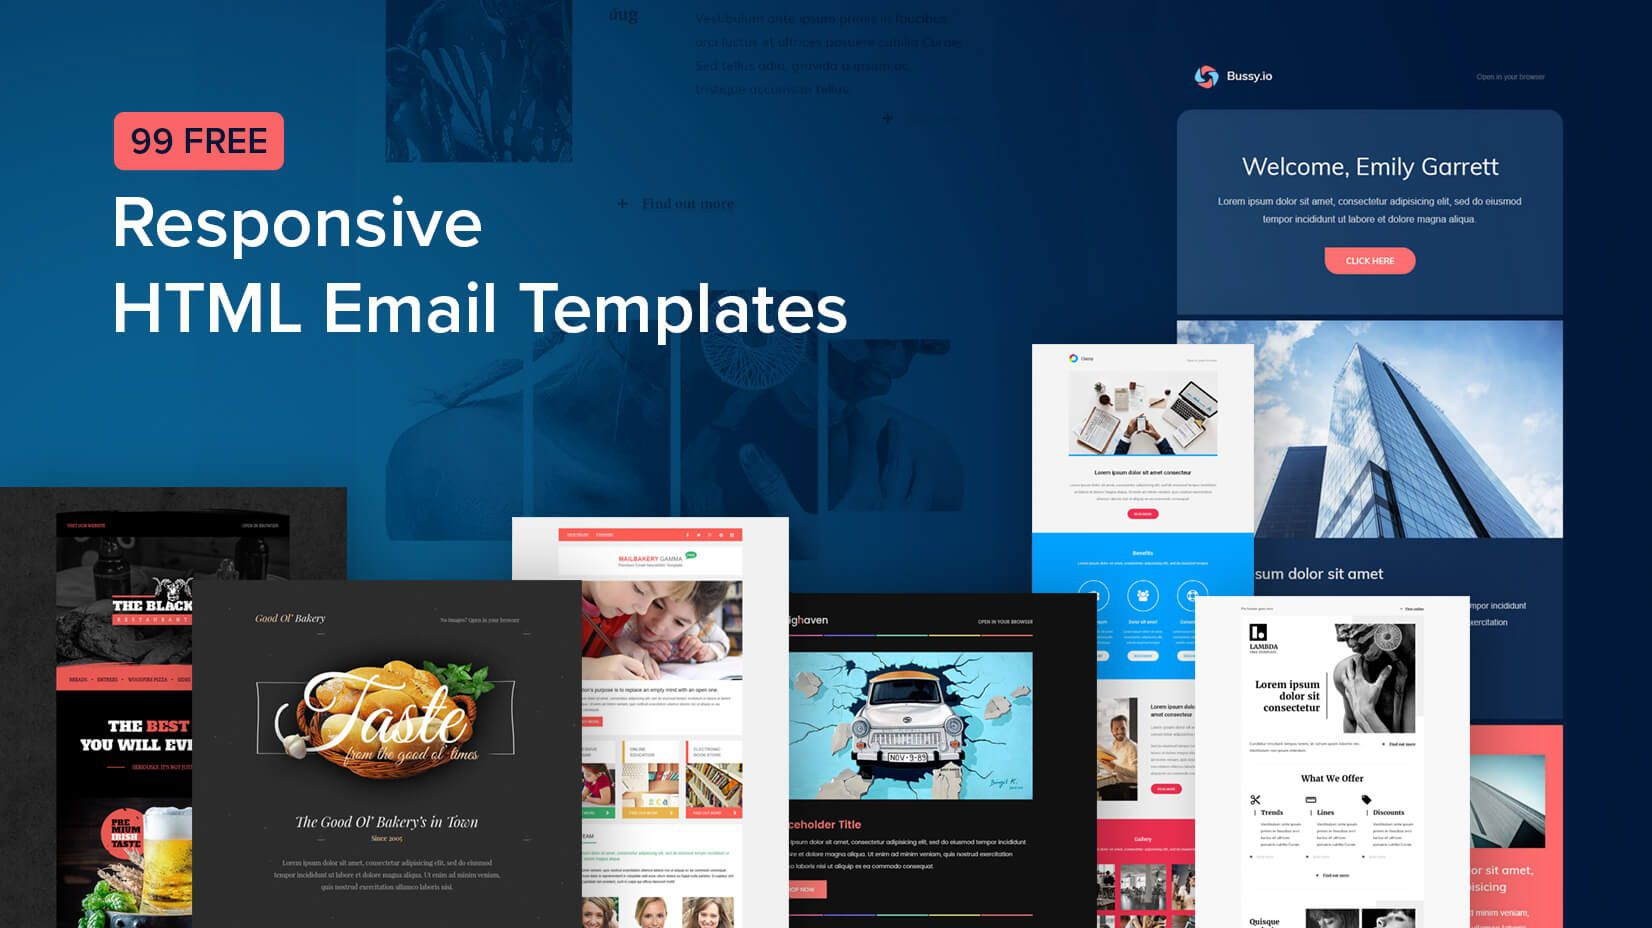 008 Shocking Free Professional Responsive Website Template Image  Templates Bootstrap Download Html With CsFull